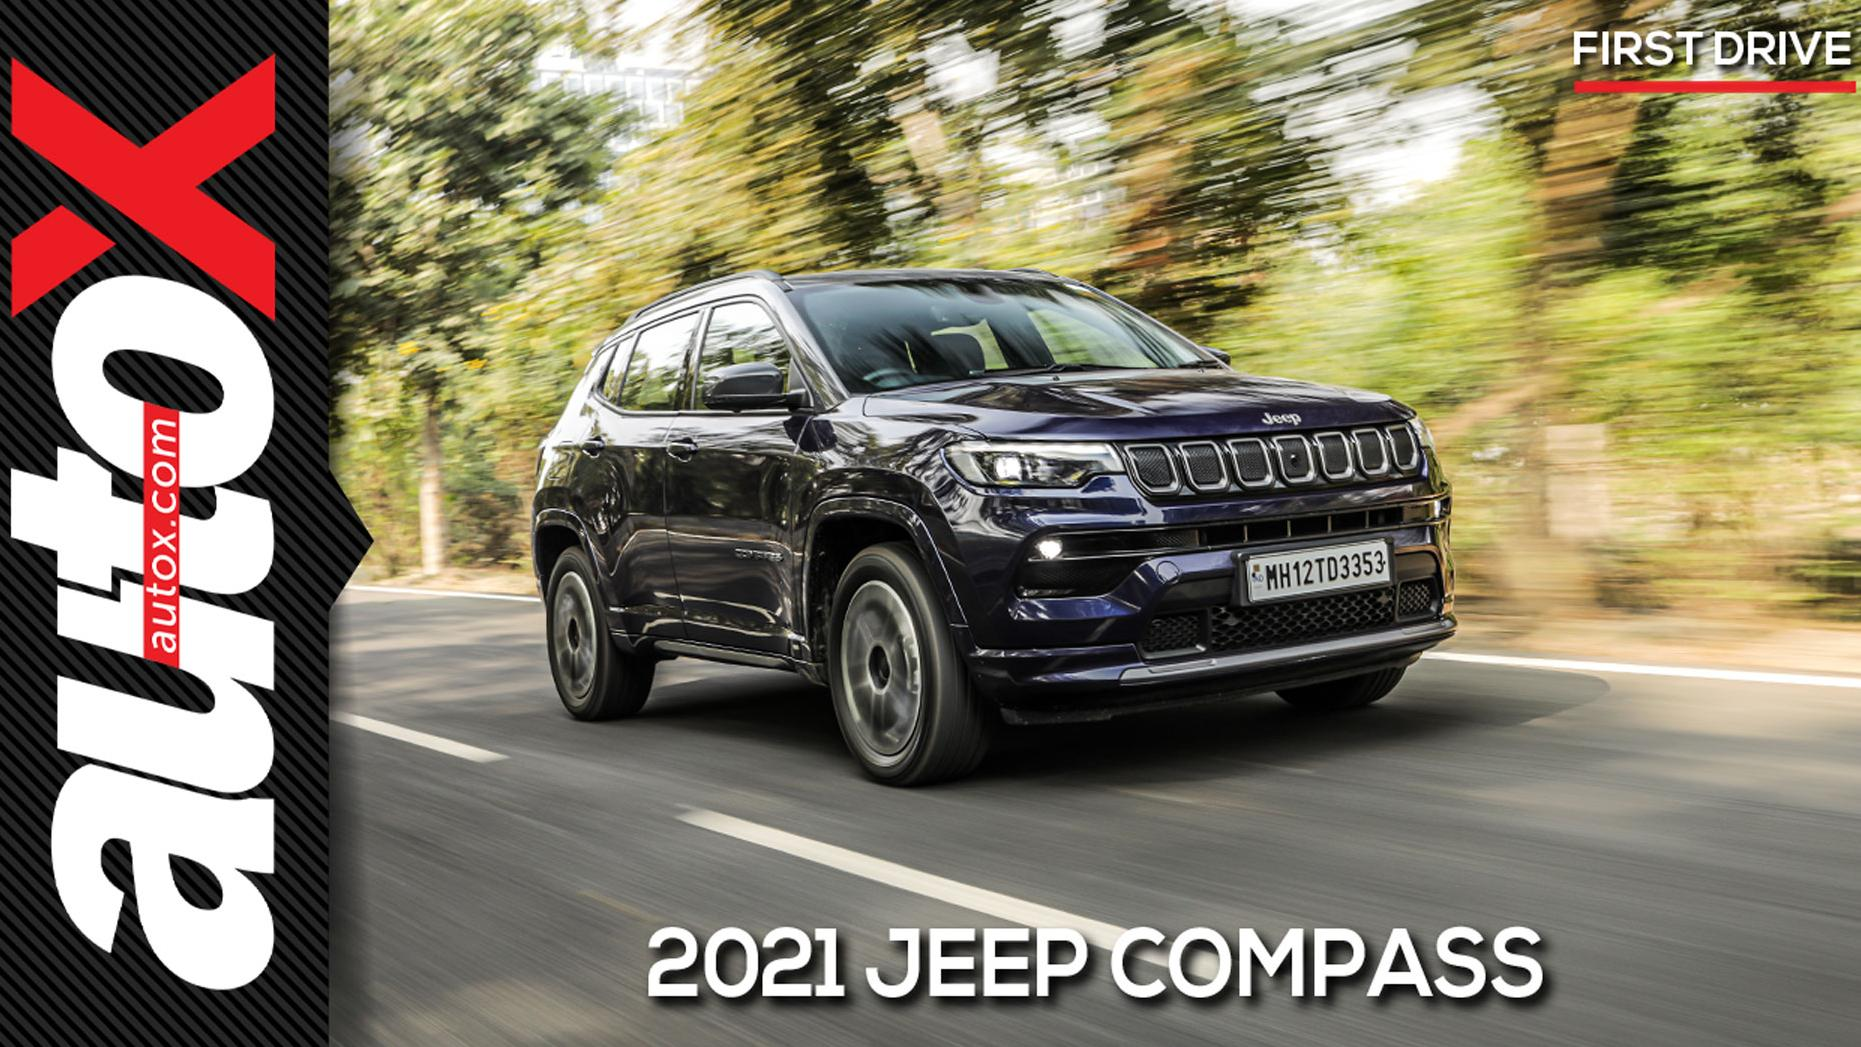 2021 Jeep Compass : The most capable compact SUV | autoX